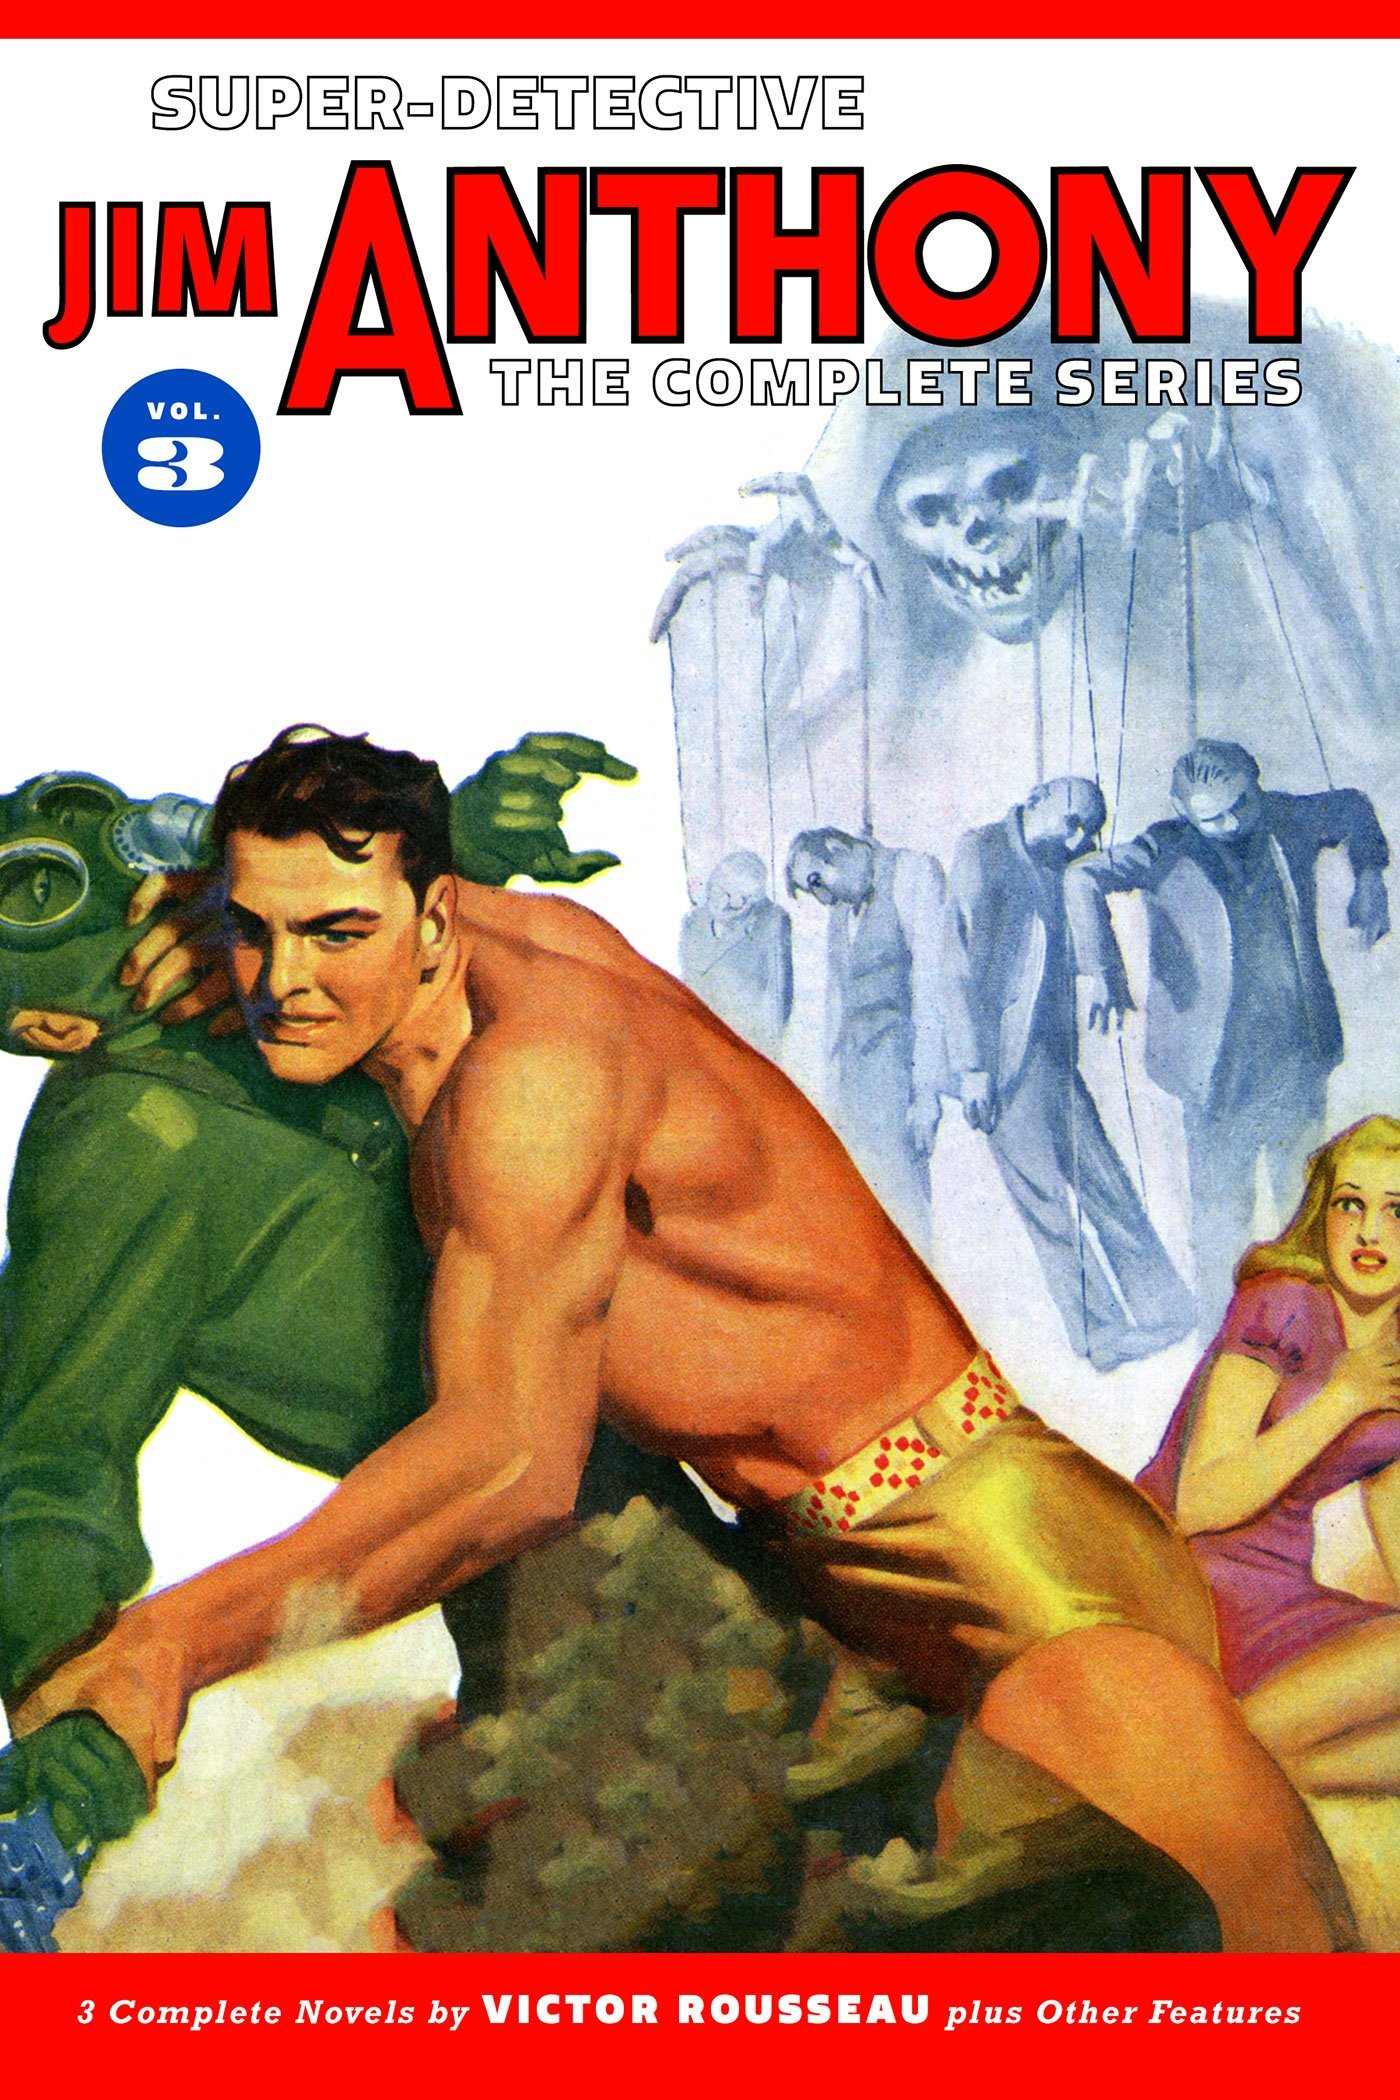 Super-Detective Jim Anthony: The Complete Series Volume 3